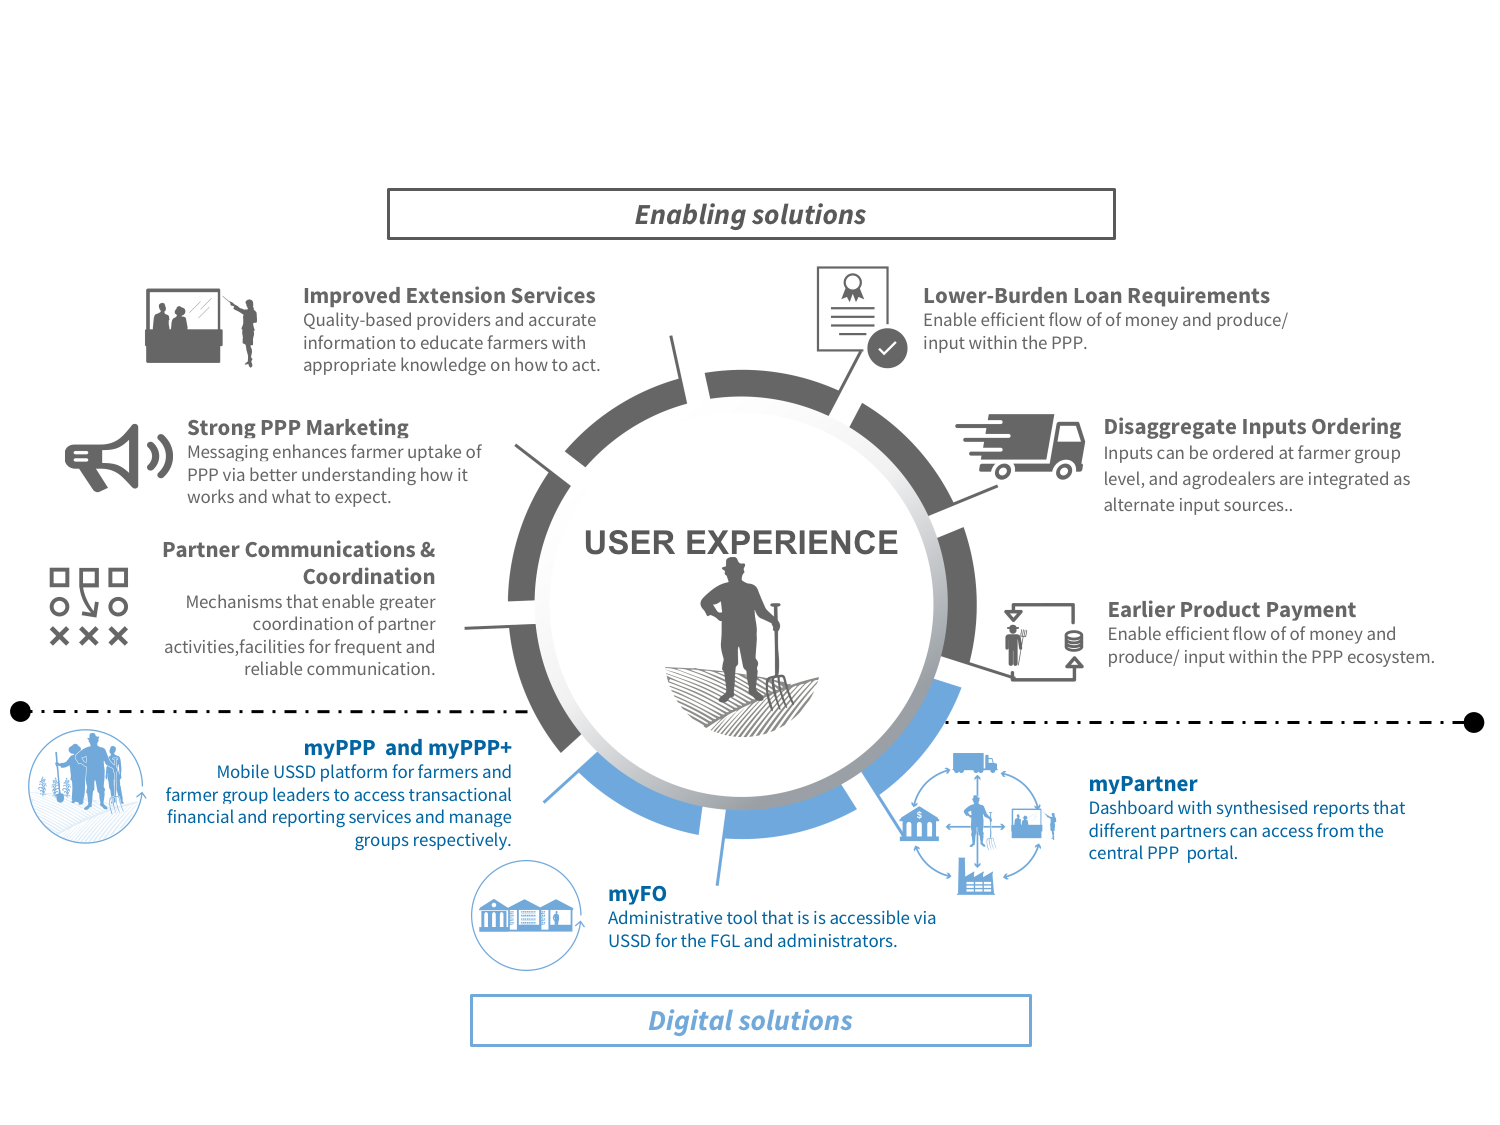 Conceptual framework for the service, which included a digital platform as well as non-digital enabling features